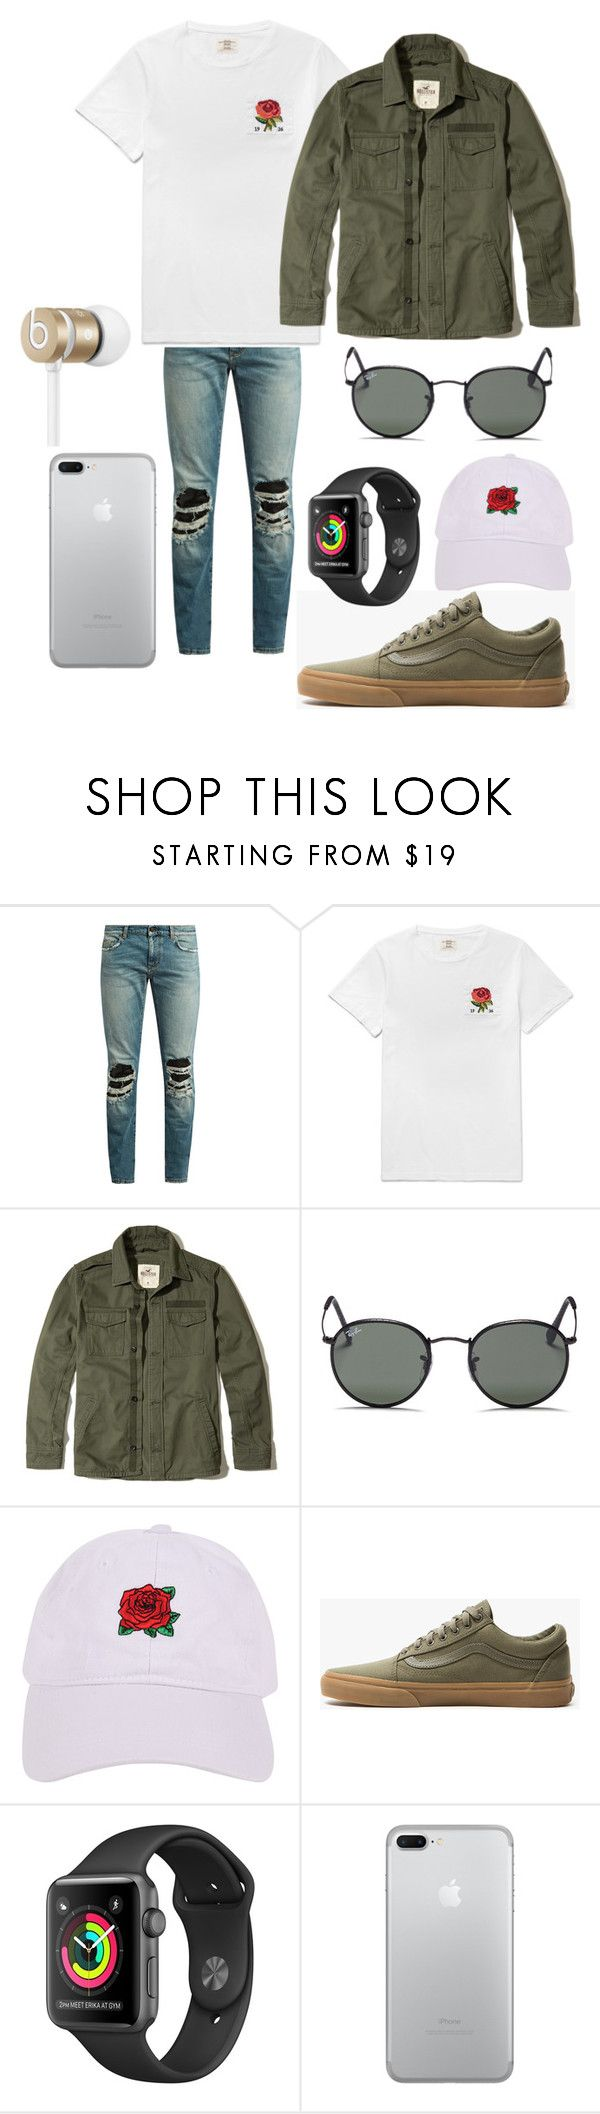 """Karev"" by vejacomotenpovoa ❤ liked on Polyvore featuring Yves Saint Laurent, Hollister Co., Ray-Ban, Armitage Avenue, Vans, Beats by Dr. Dre, men's fashion and menswear"